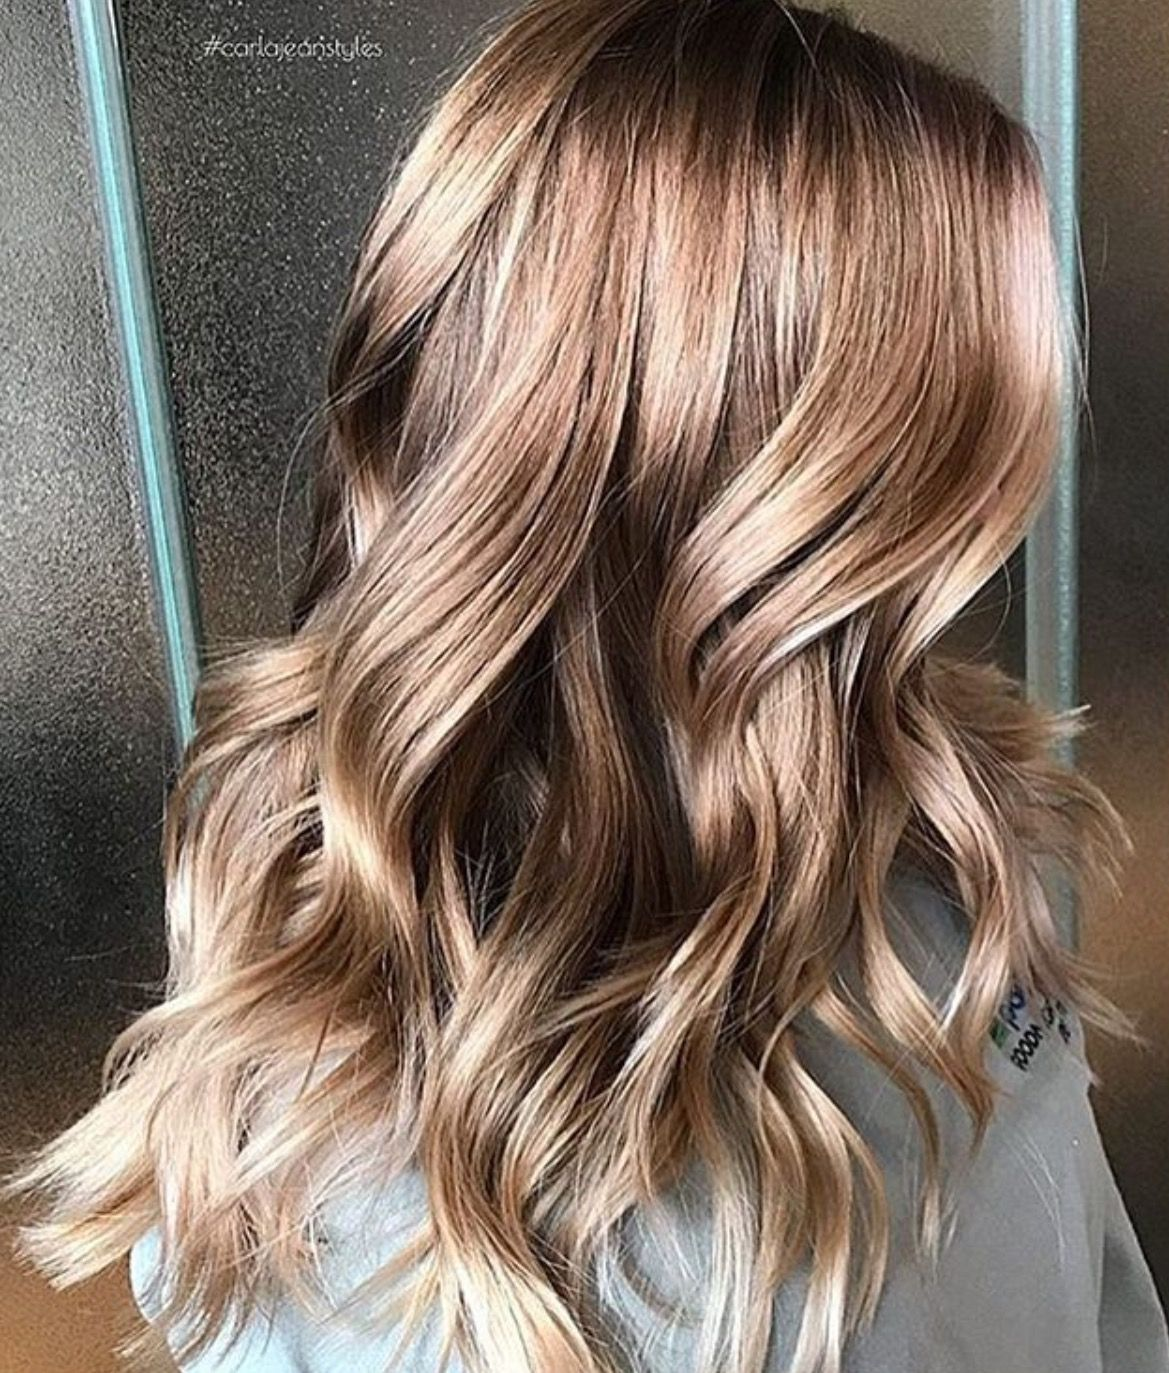 Pin by leanne paxton on hair pinterest hair hair styles and